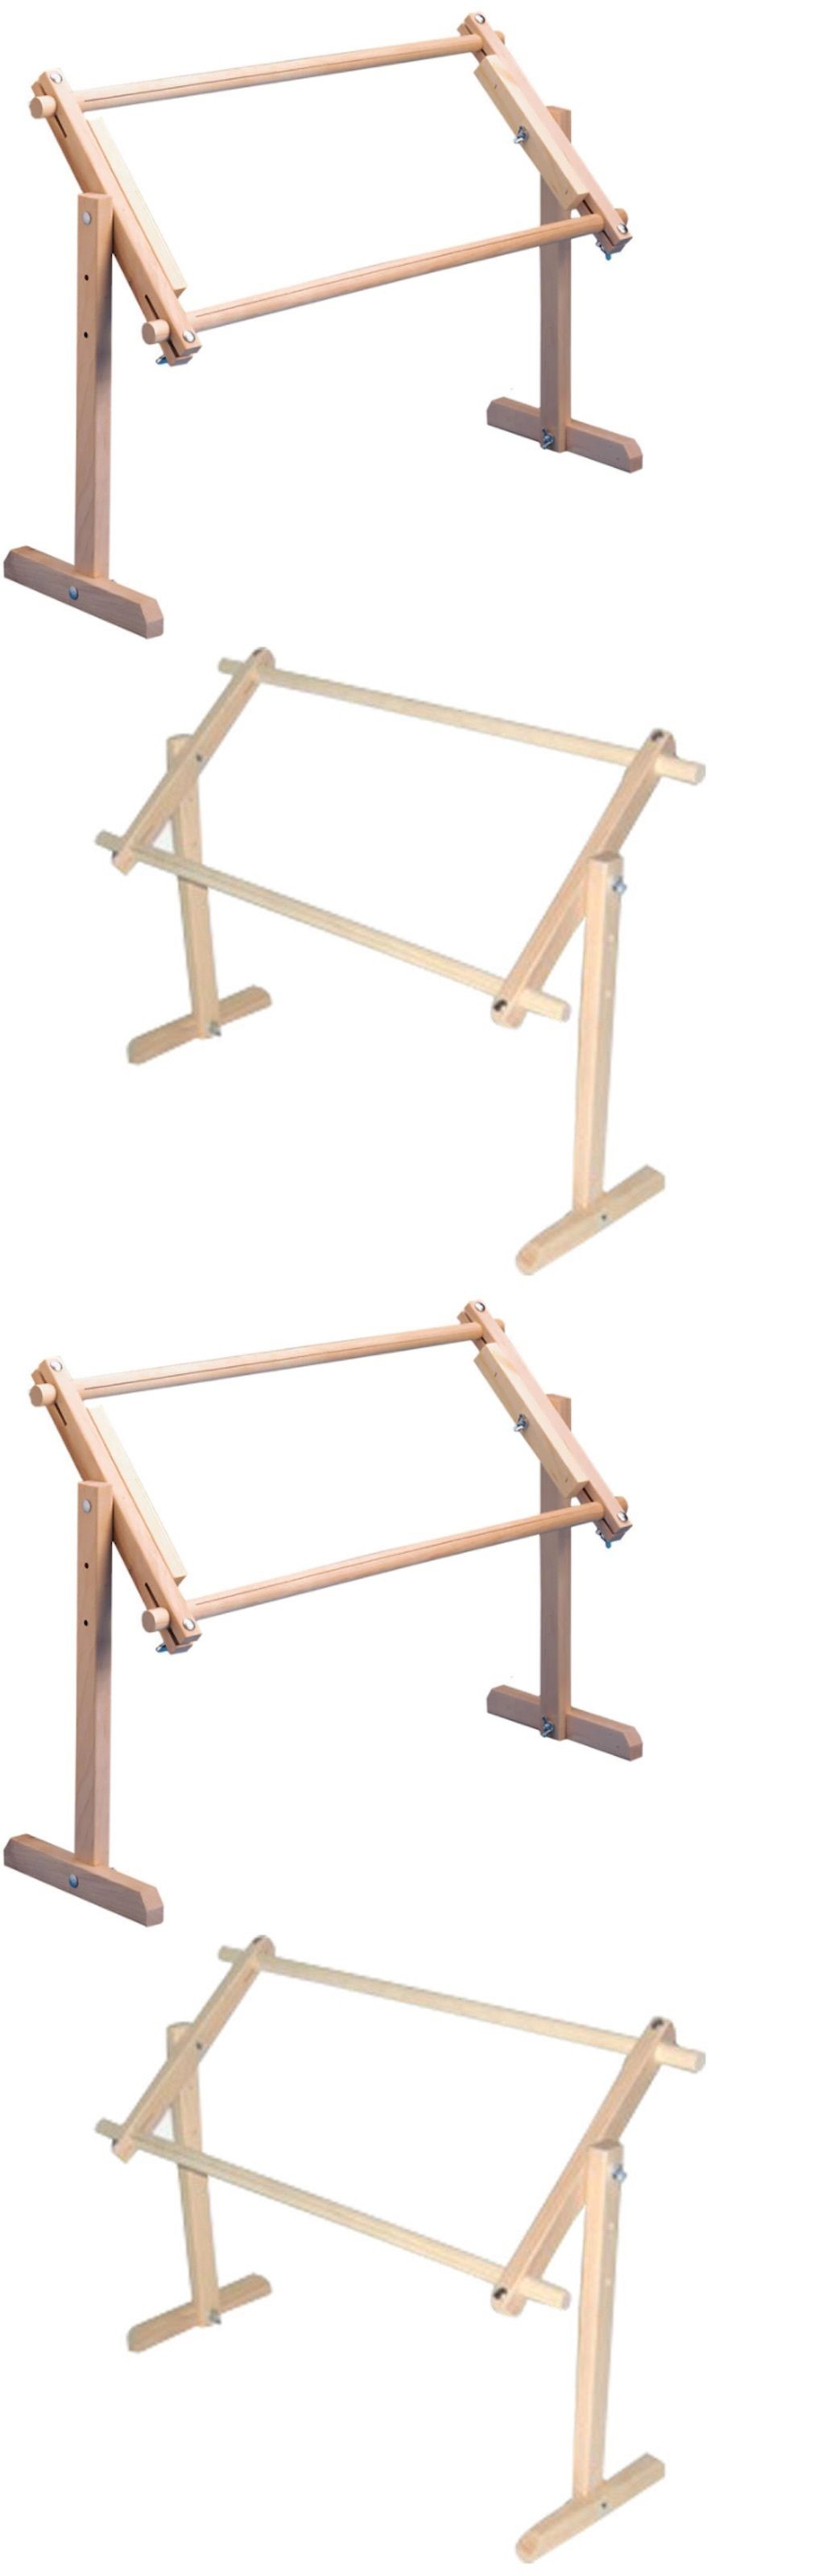 Hand Embroidery Hoops and Frames 160721: Needlework Stand Lap Frame ...